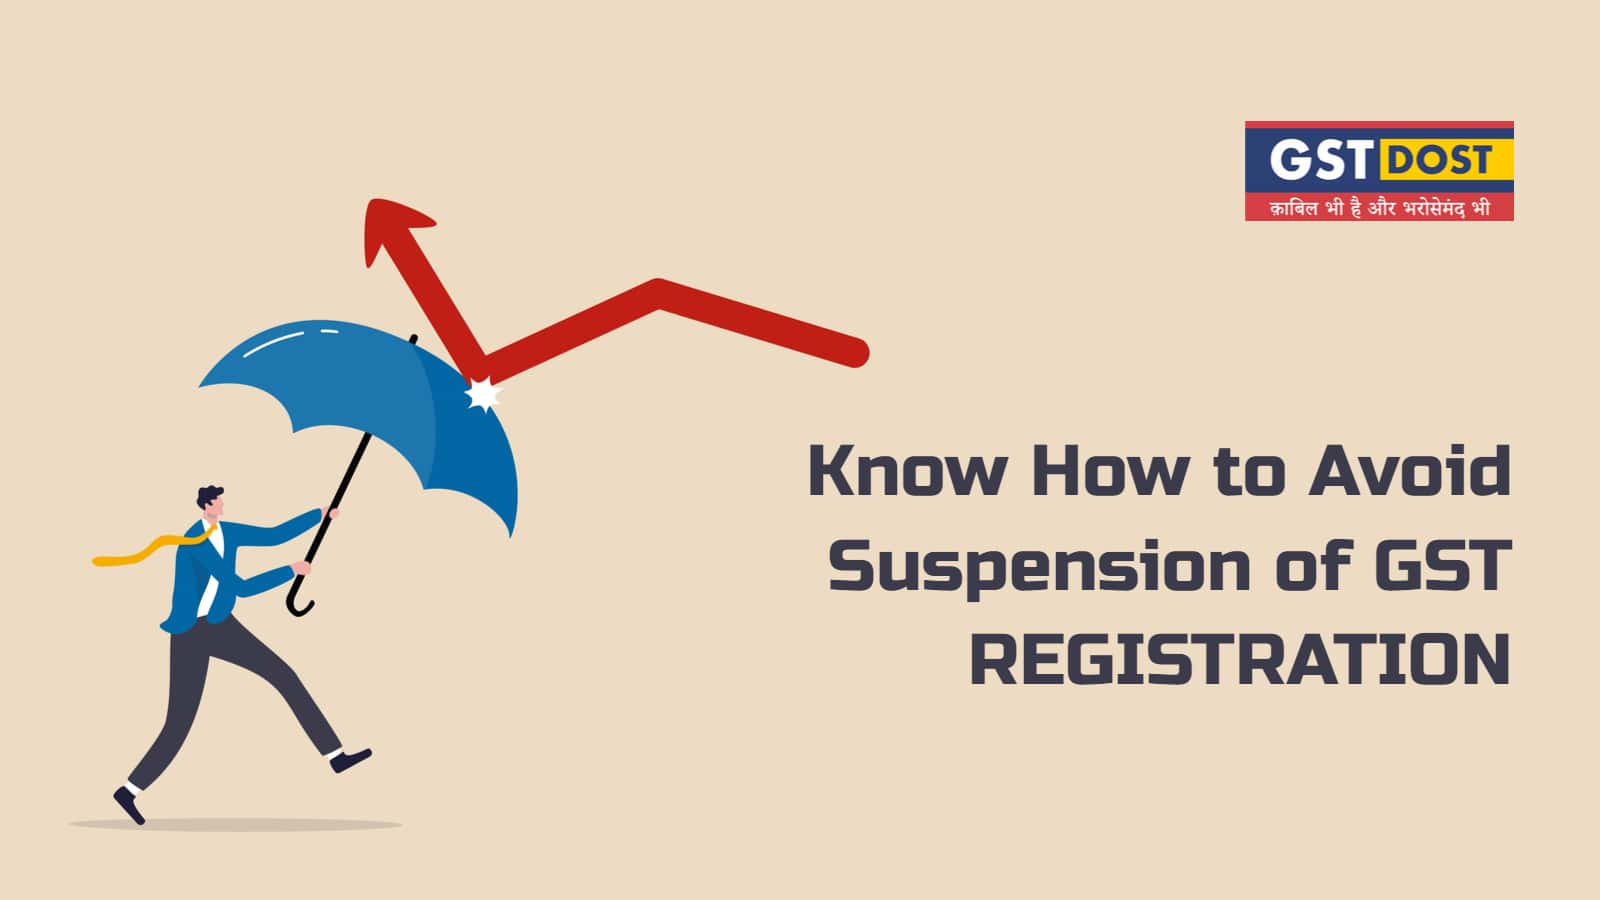 Know How to Avoid Suspension of GST Registration